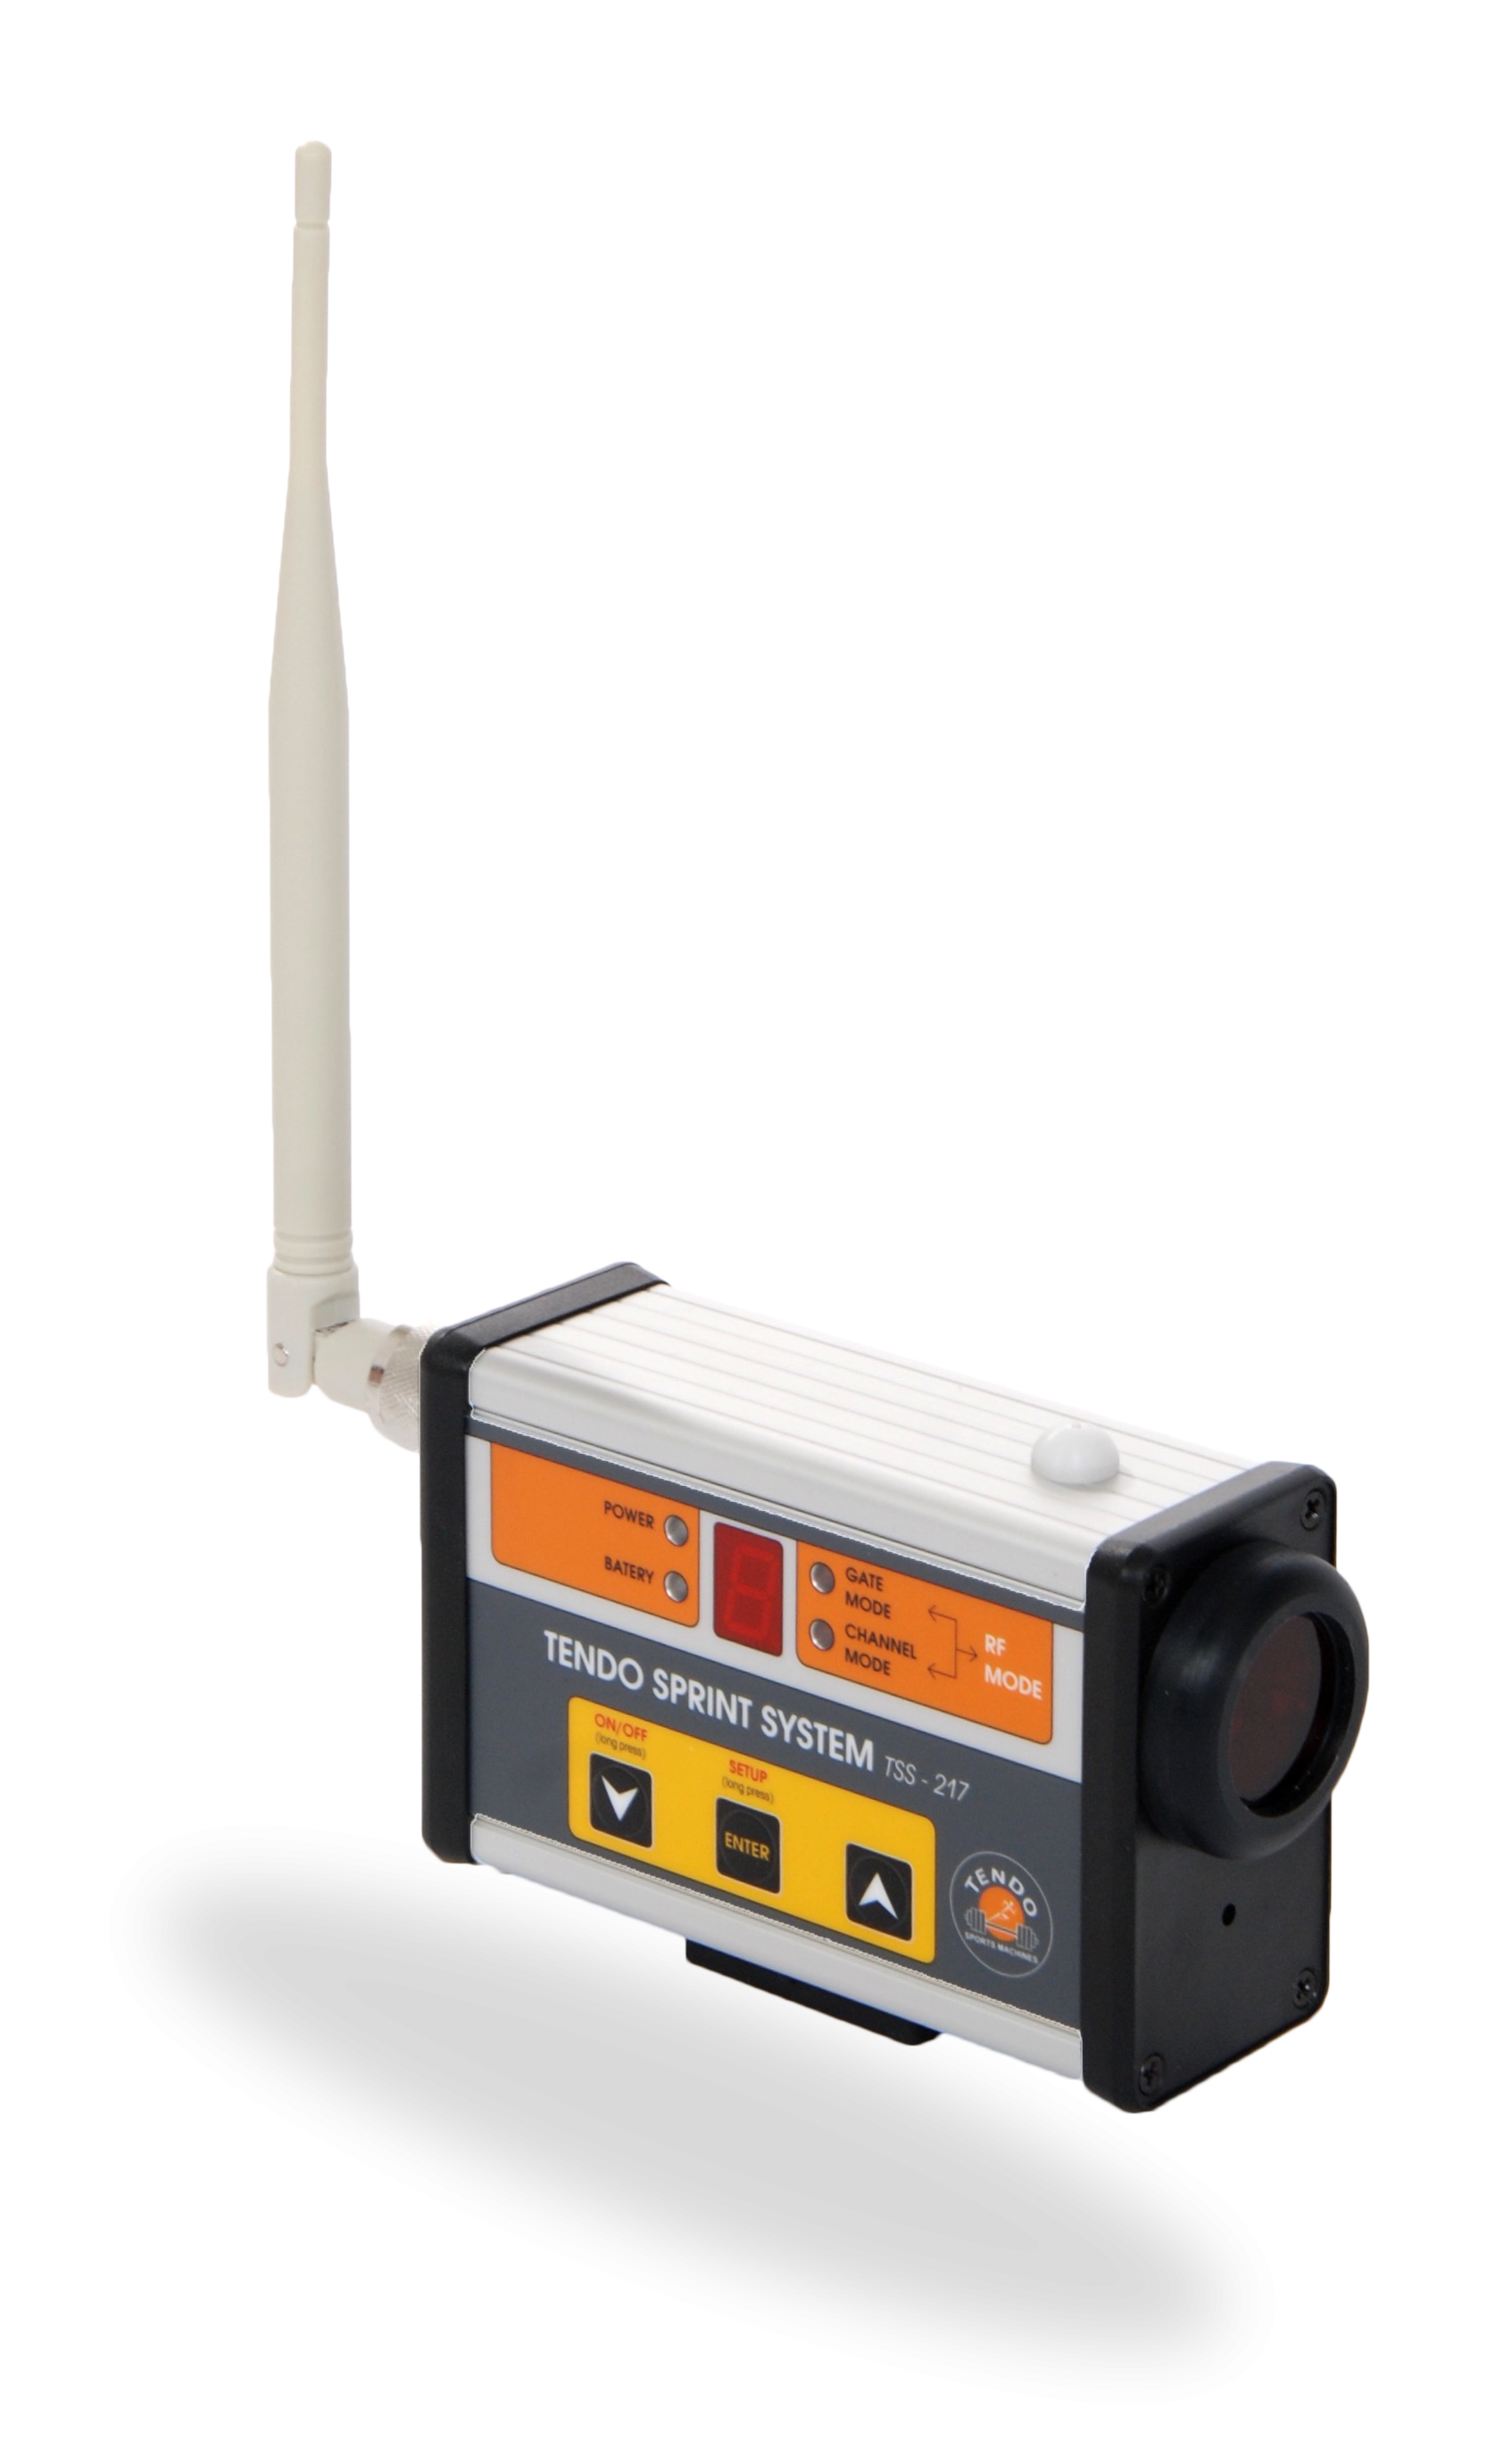 Tendo Sprint System, the timing system photocell by Tendo Sport front view